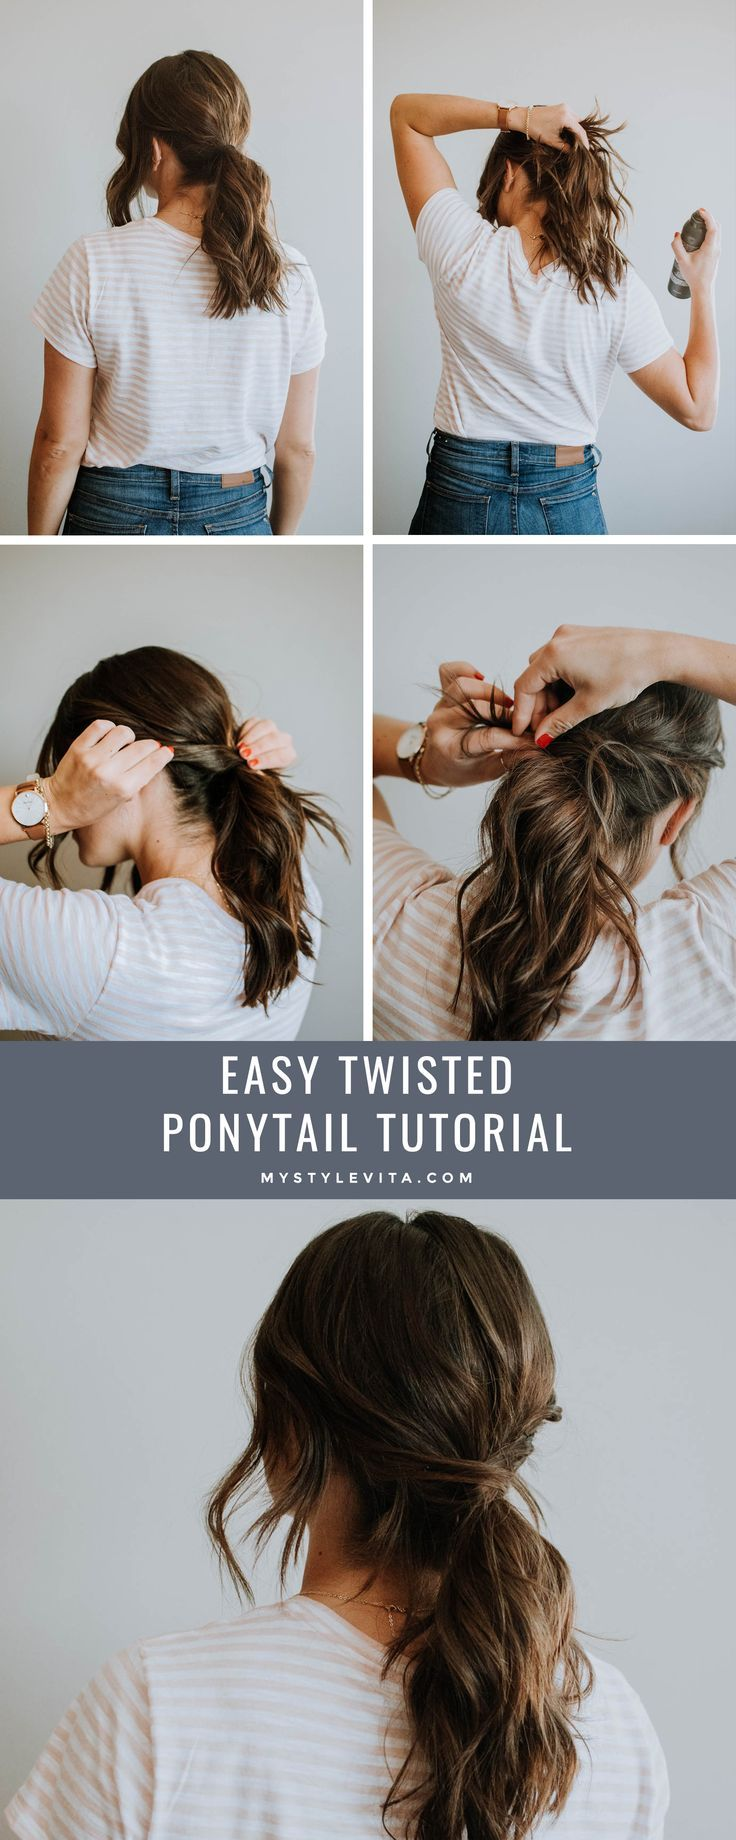 Fashion style Ponytail Twisted ideas for girls